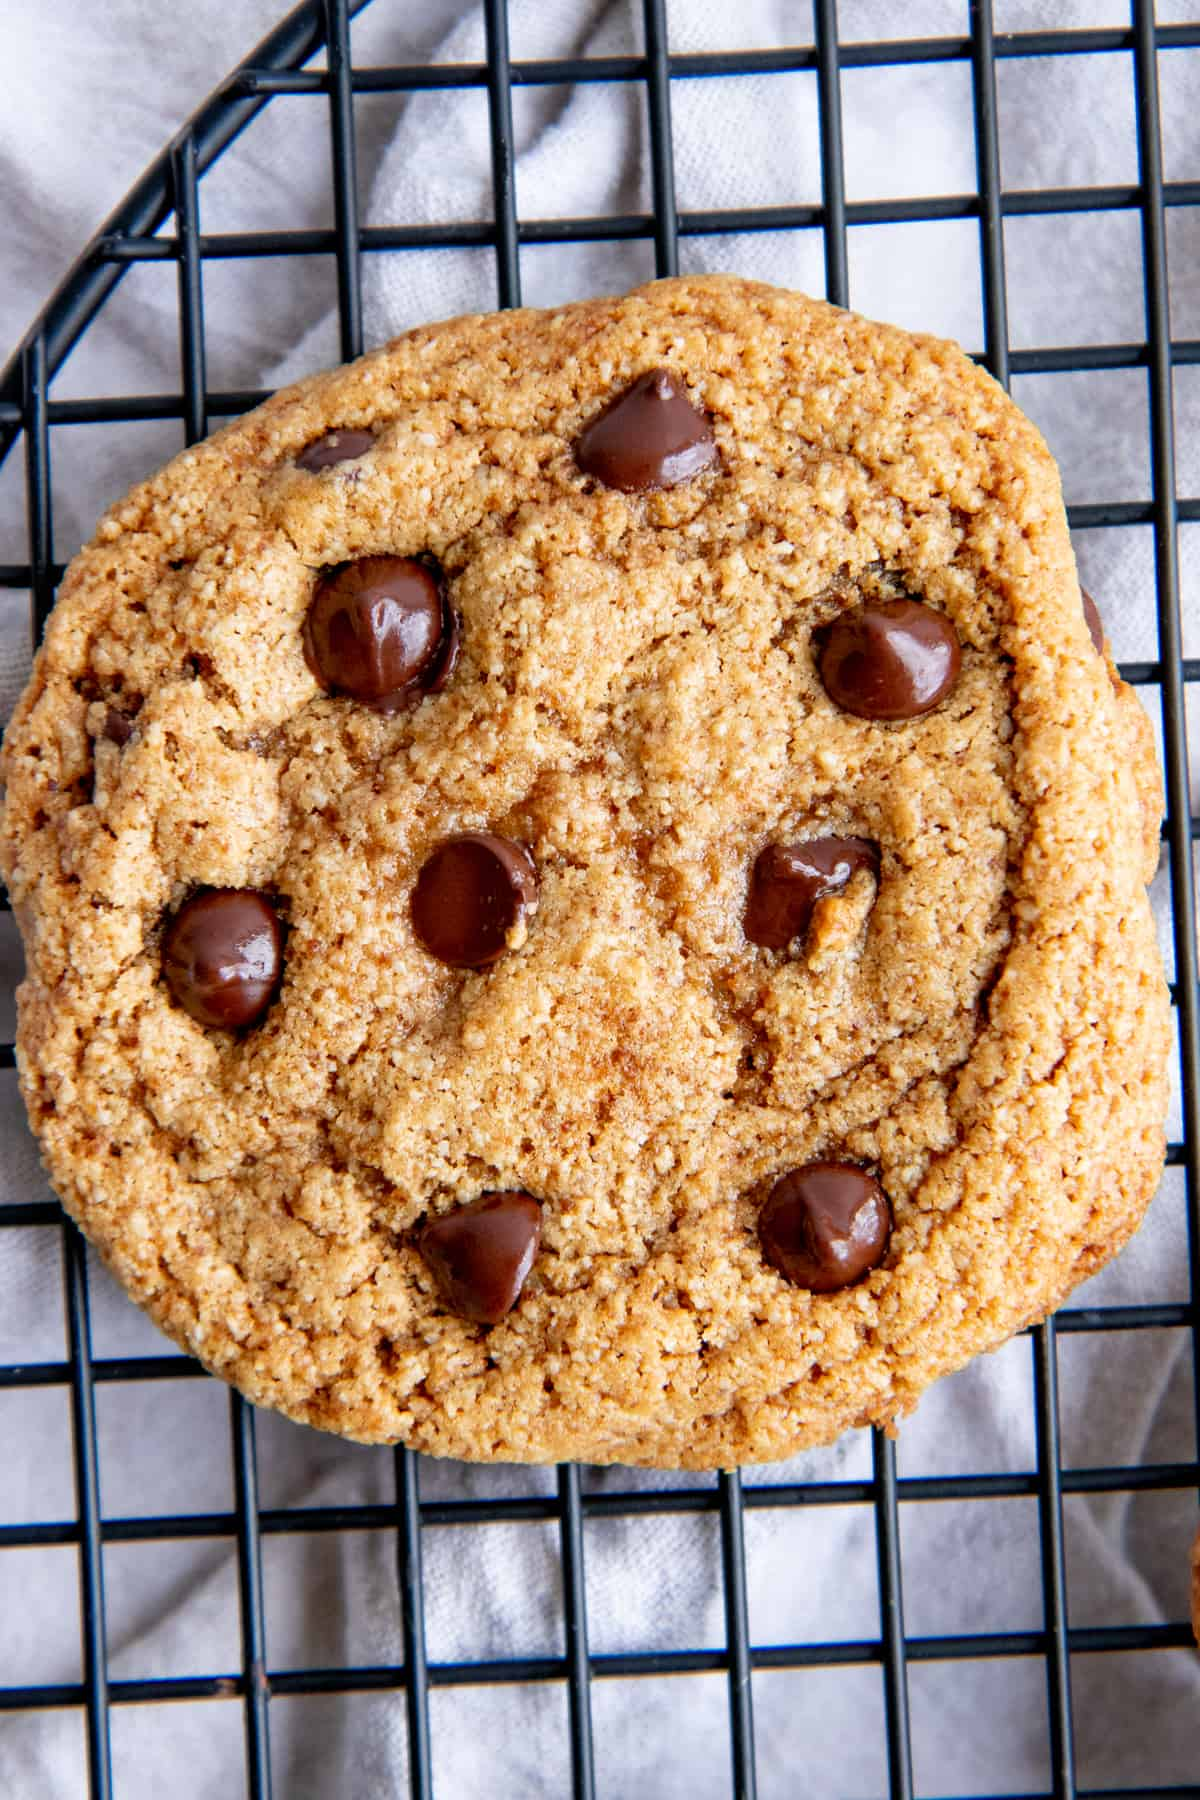 Close up of a paleo chocolate chip cookie.